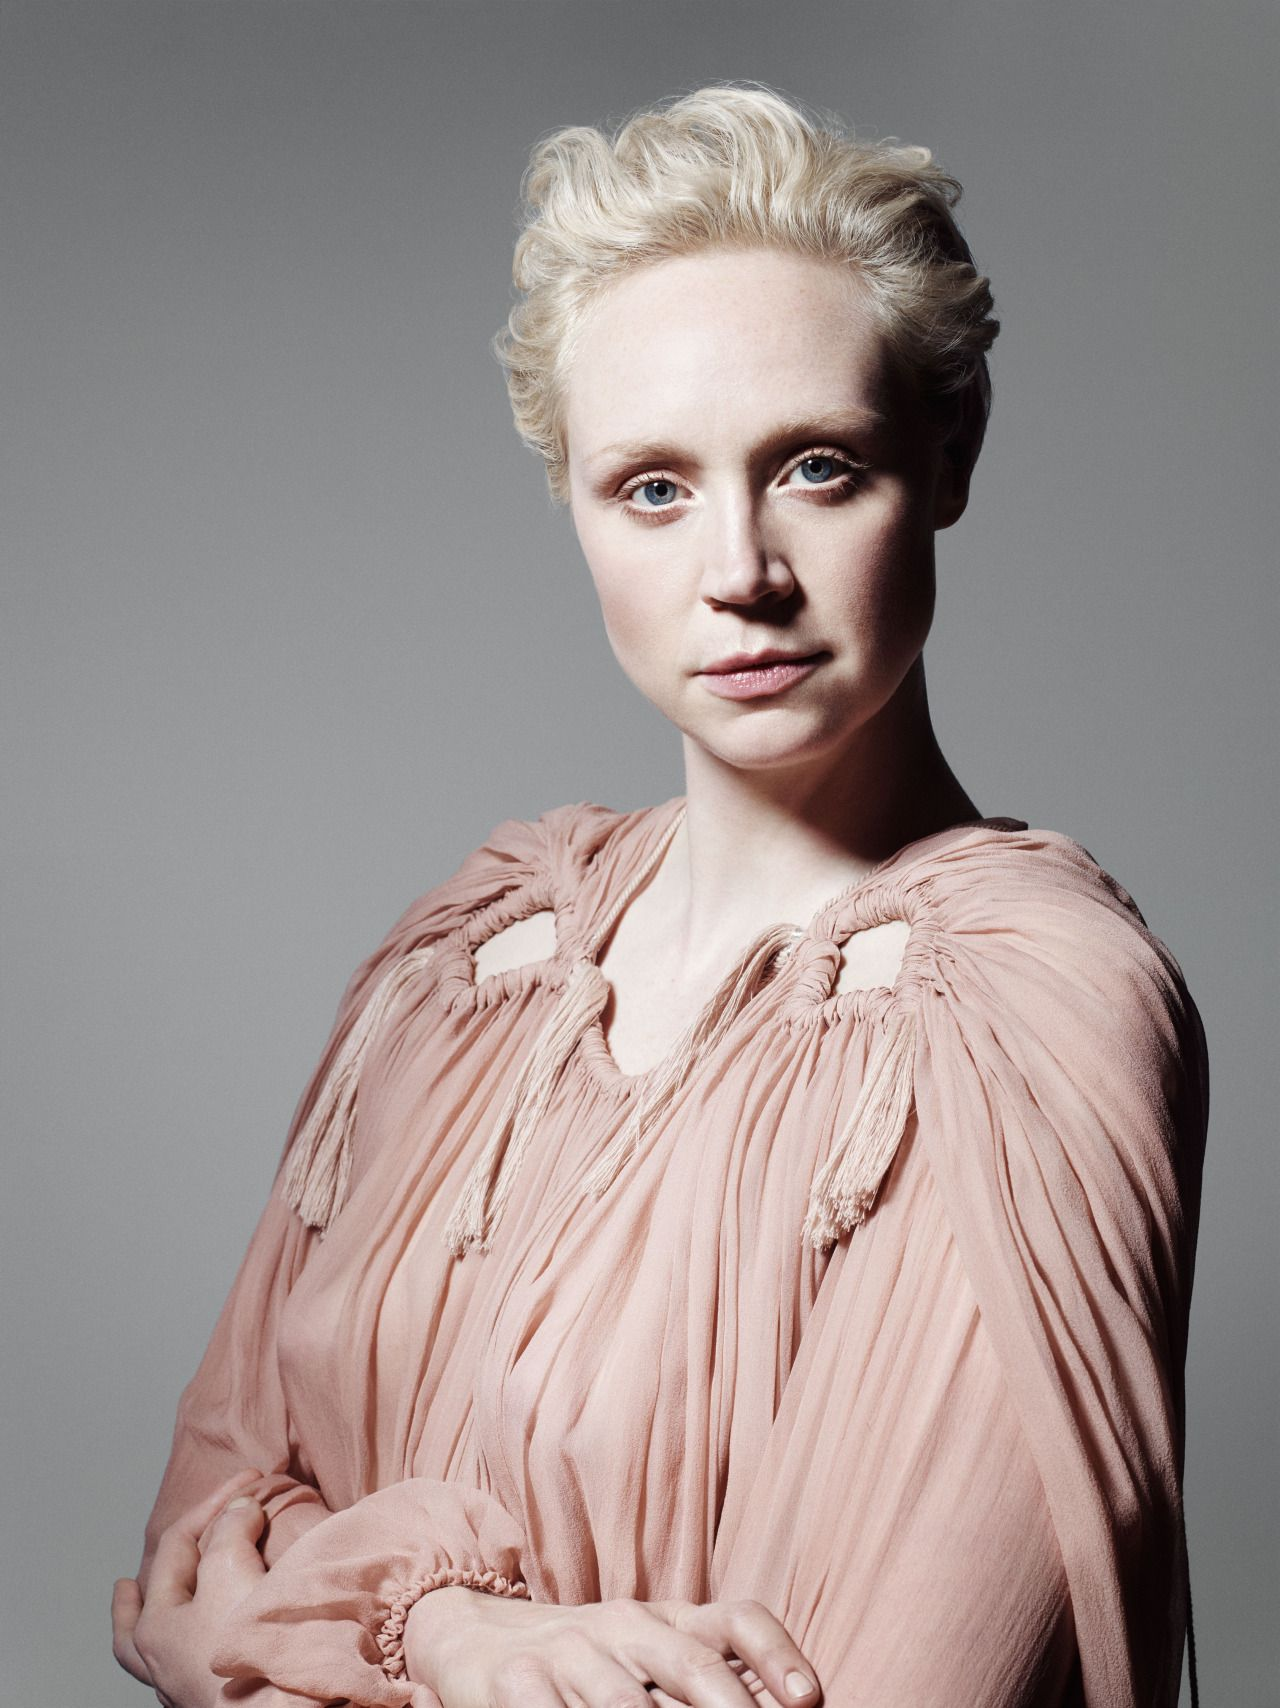 Gwendoline Christie Nude Pictures intended for gwendoline christie - cpa-02 is an android bodyguard. she's a